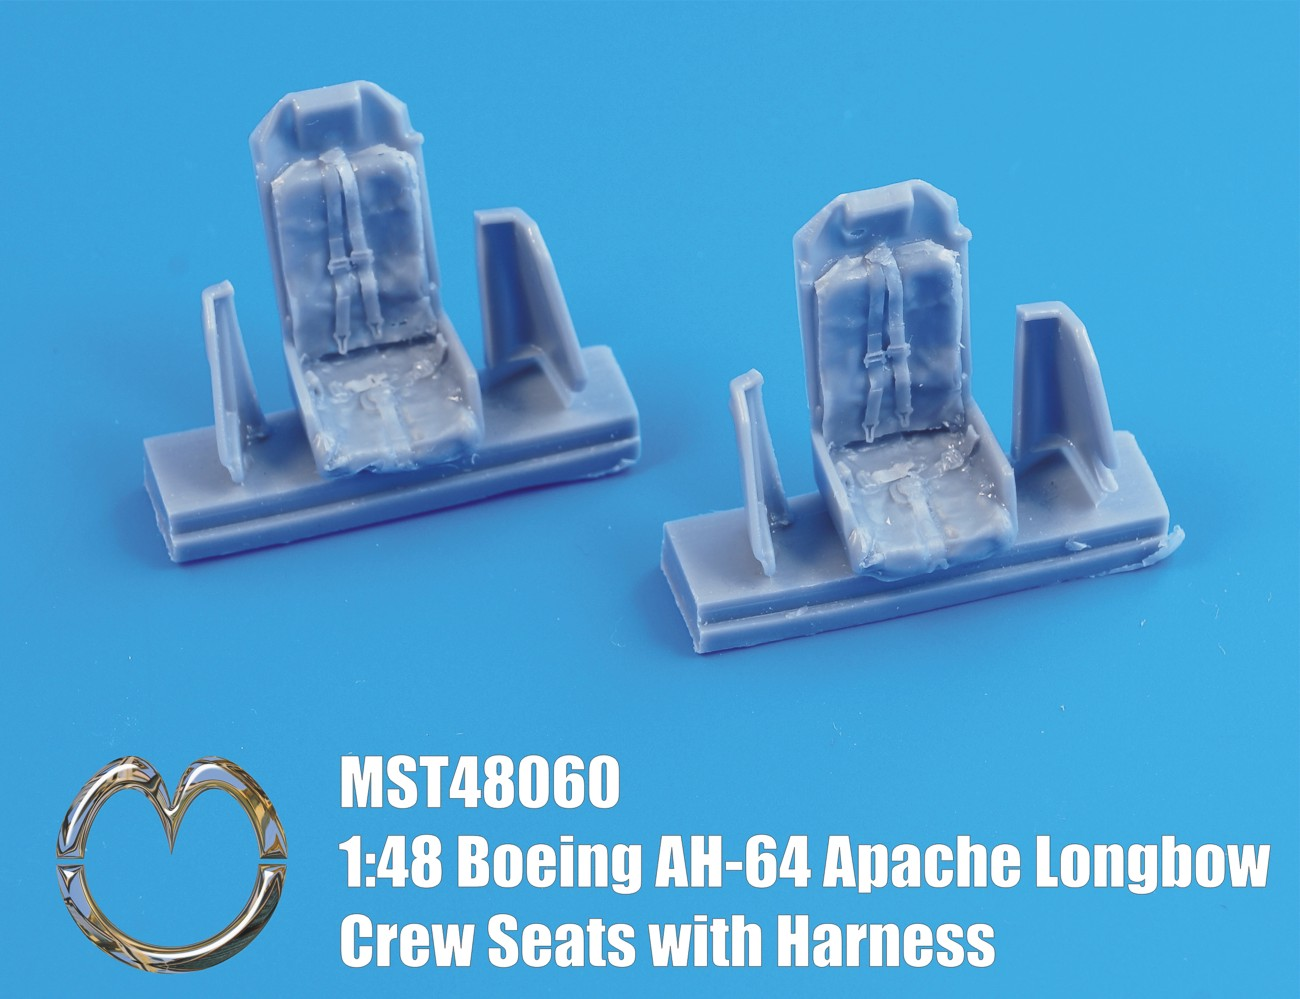 MST48060 Boeing AH-64 Apache Longbow Crew Seats with Harness